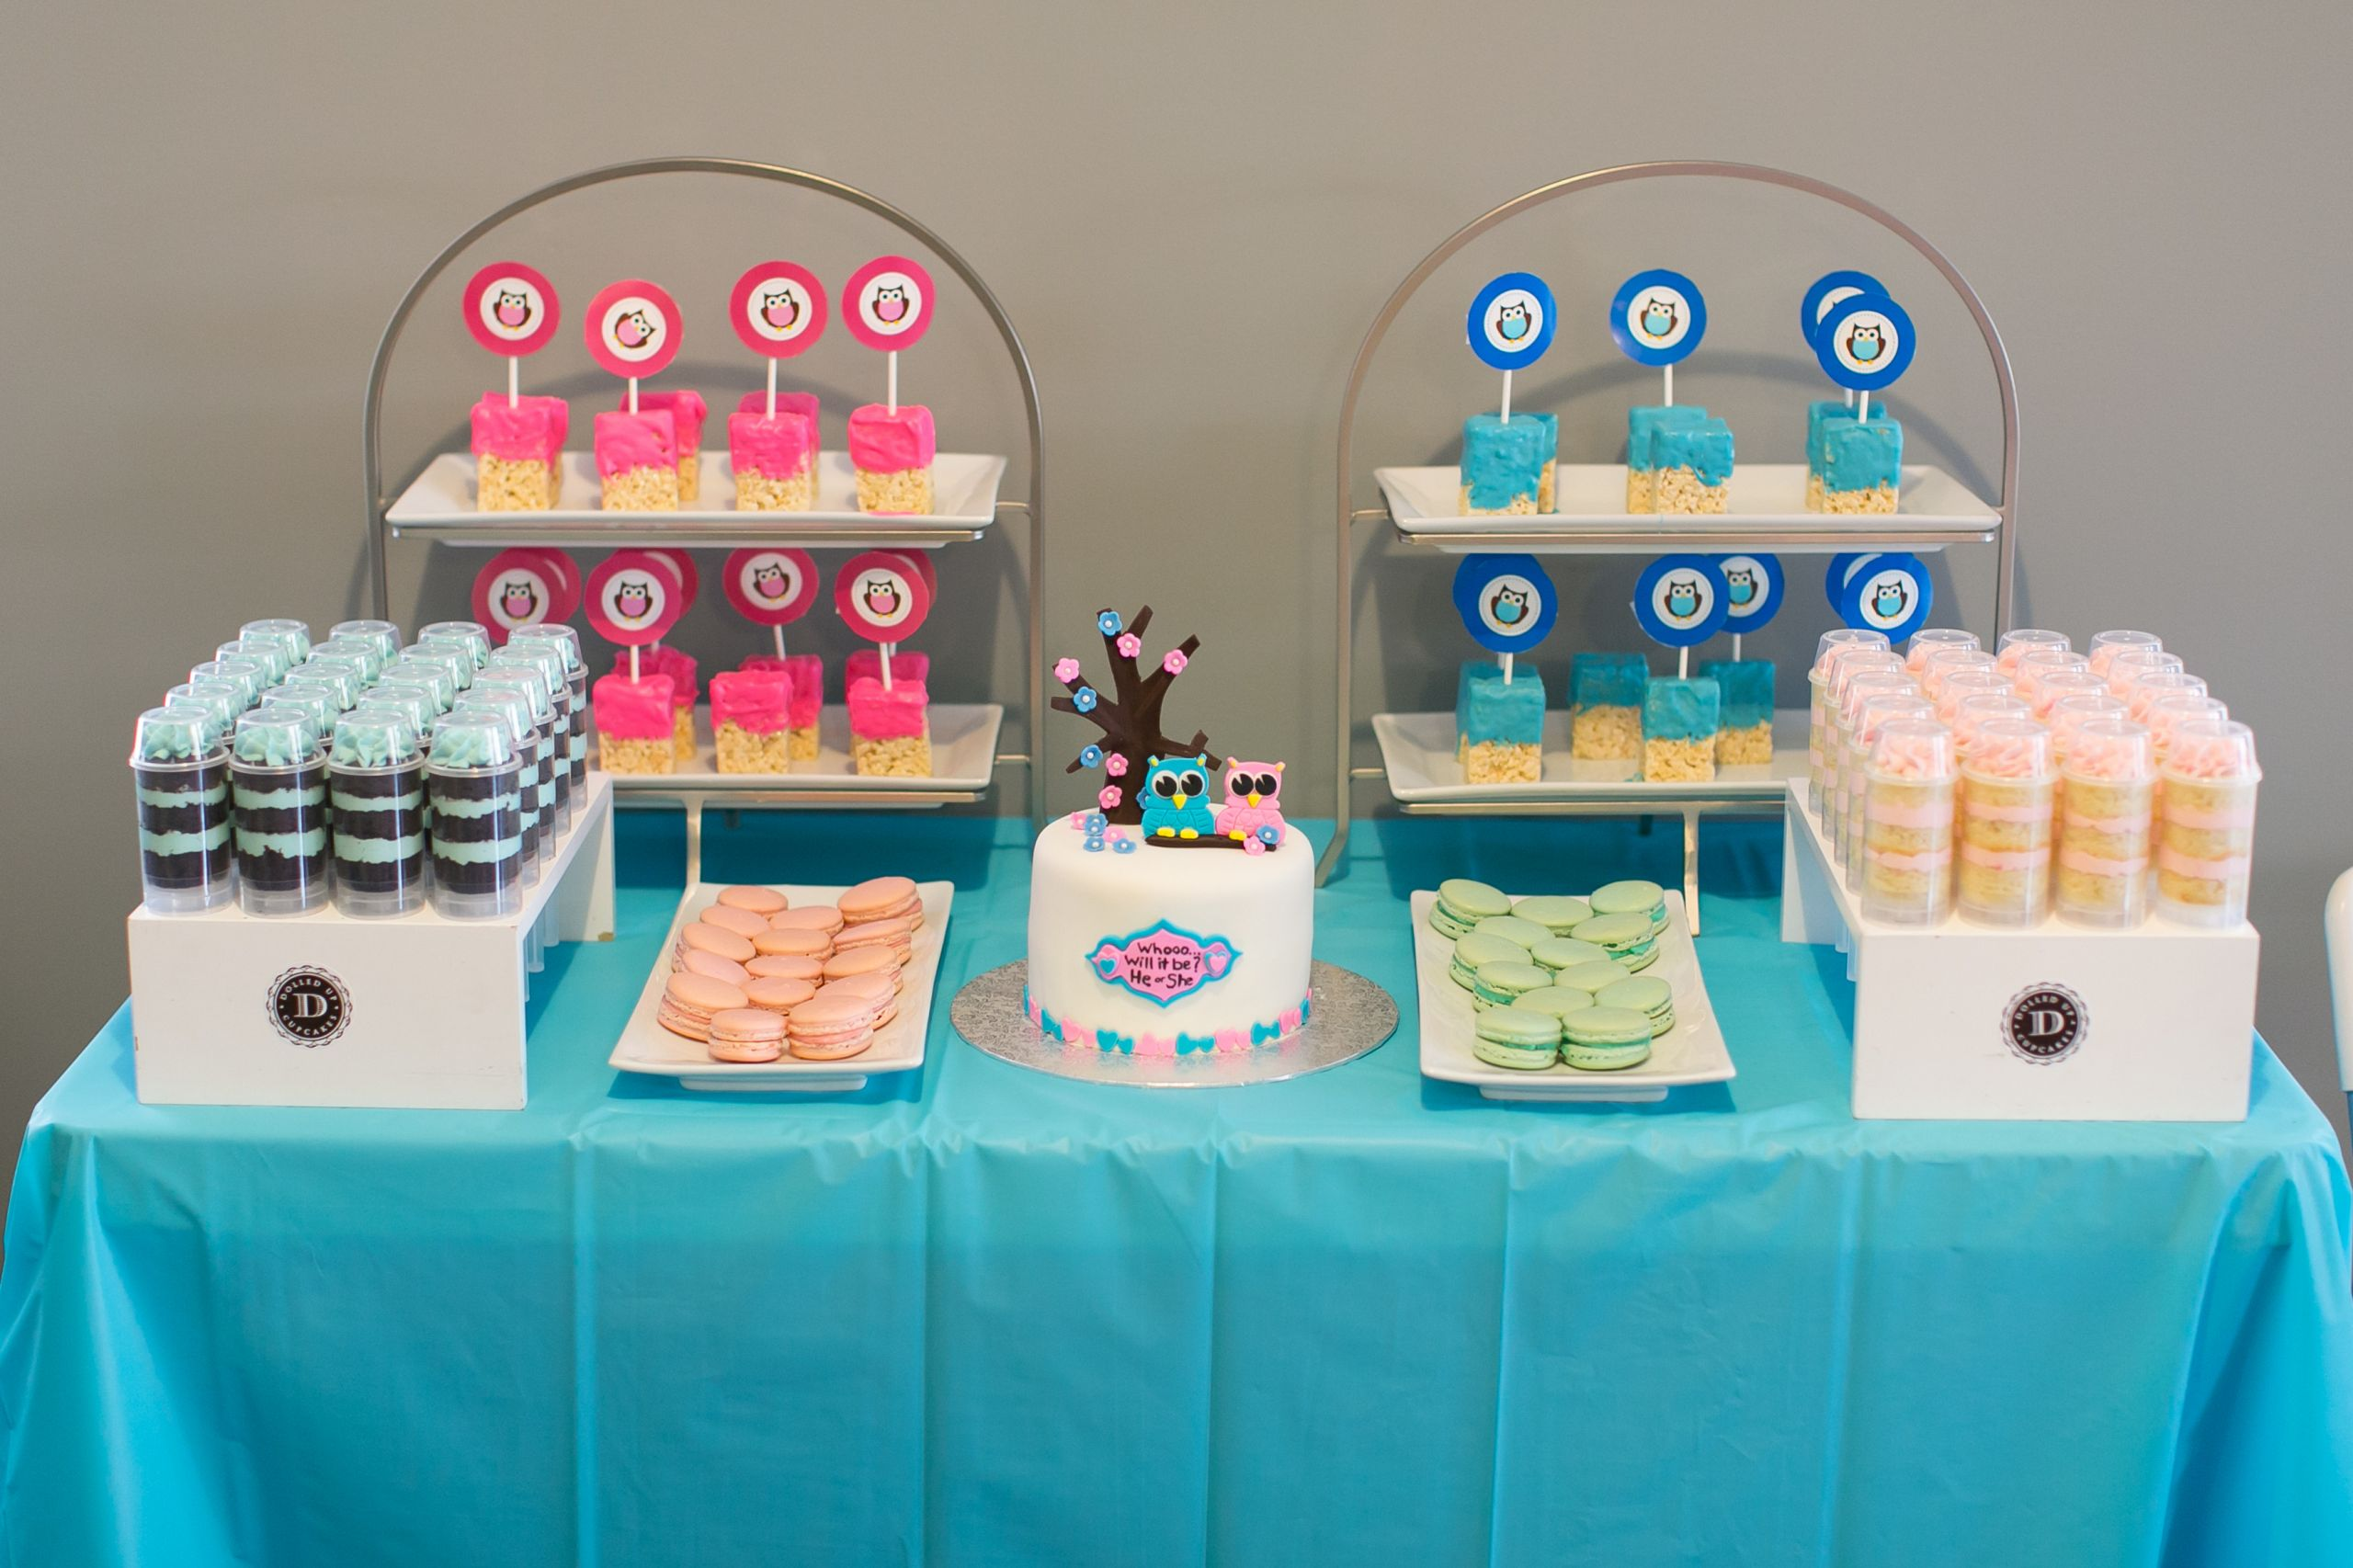 Classy Gender Reveal Party Ideas  Baby G's Gender Reveal Party